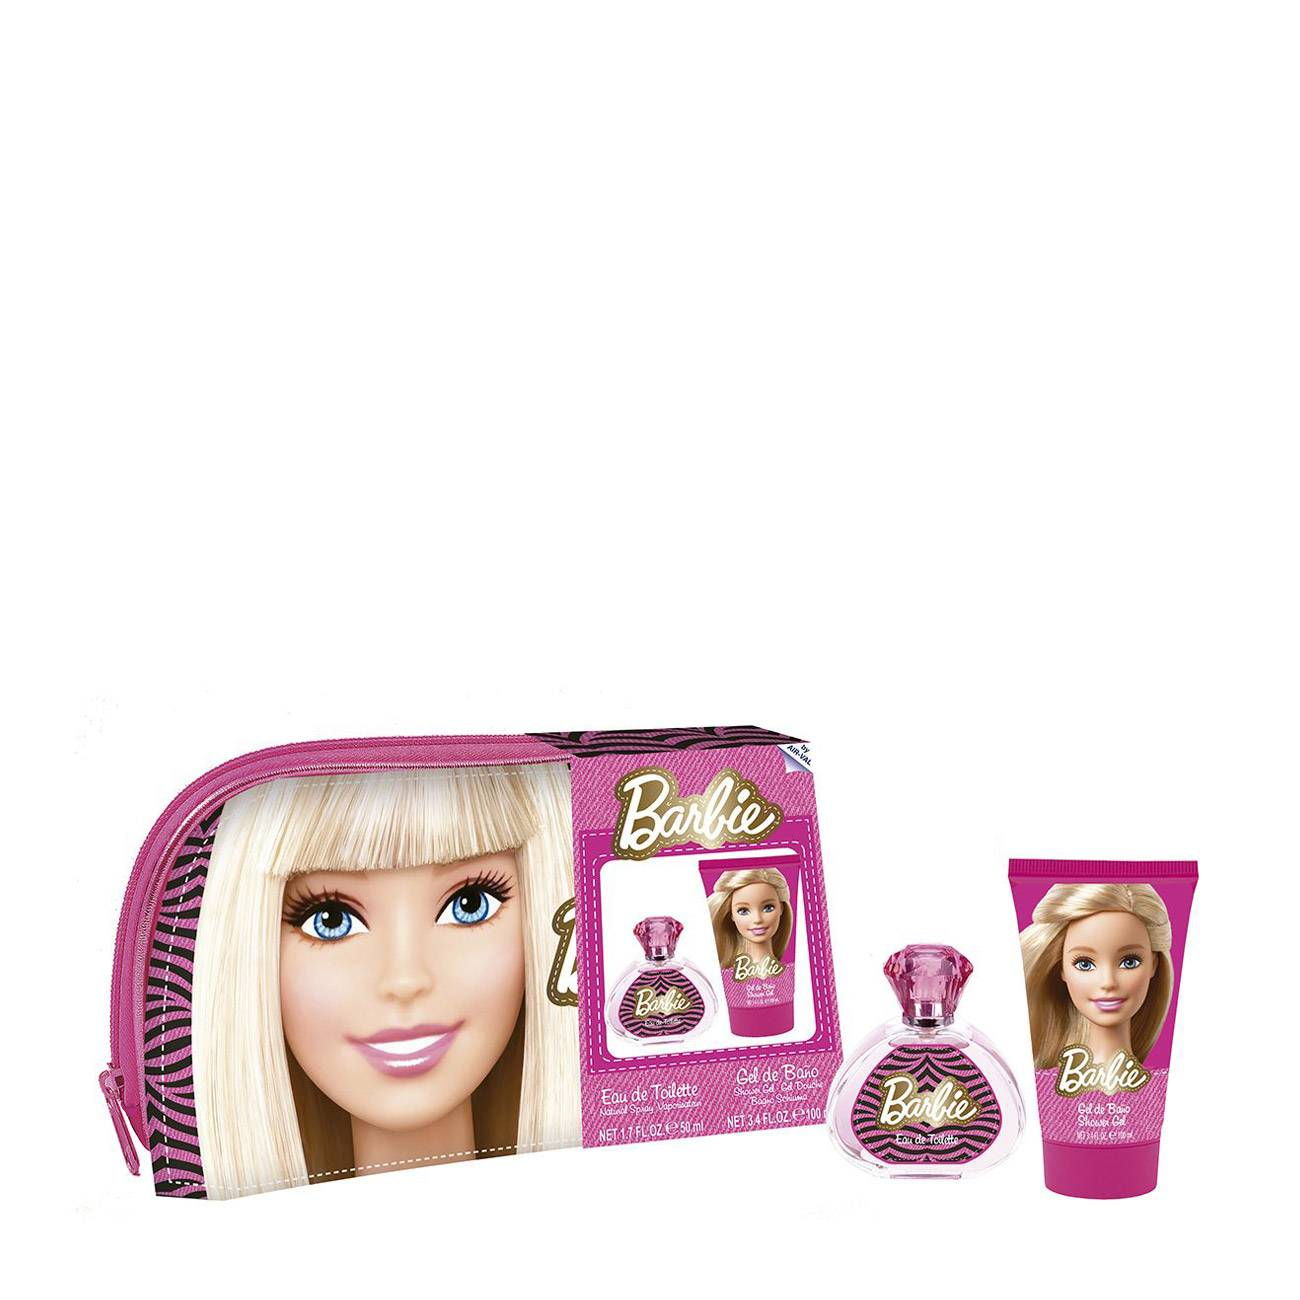 BARBIE TOILETRY BAG SET 150ml imagine produs